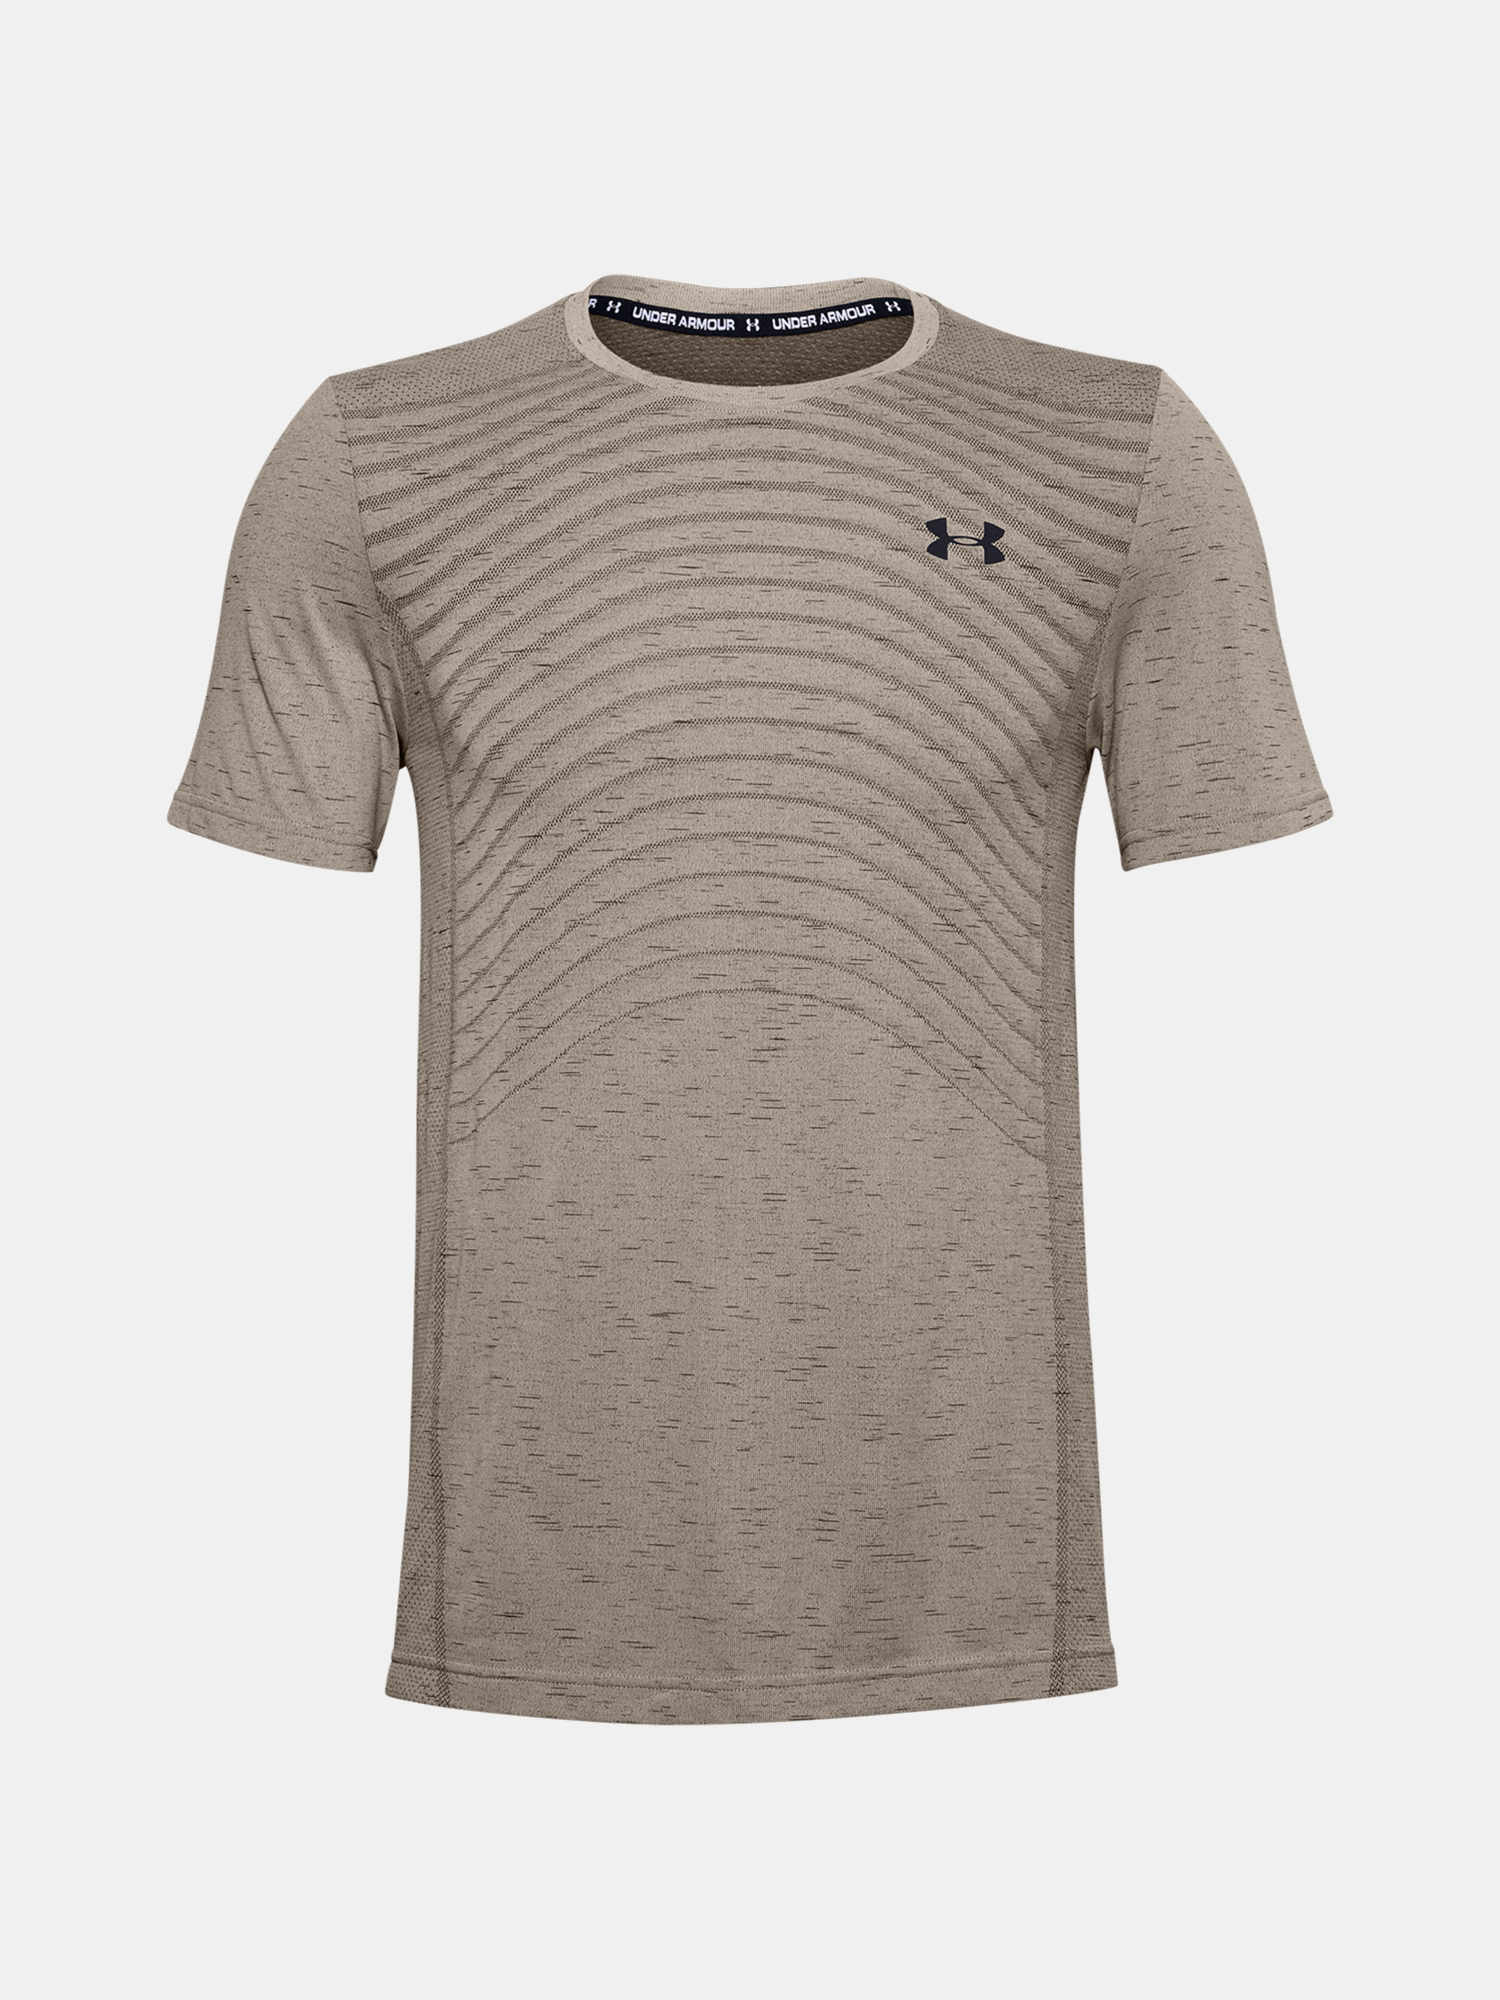 Tričko Under Armour UA Seamless Wave SS (3)